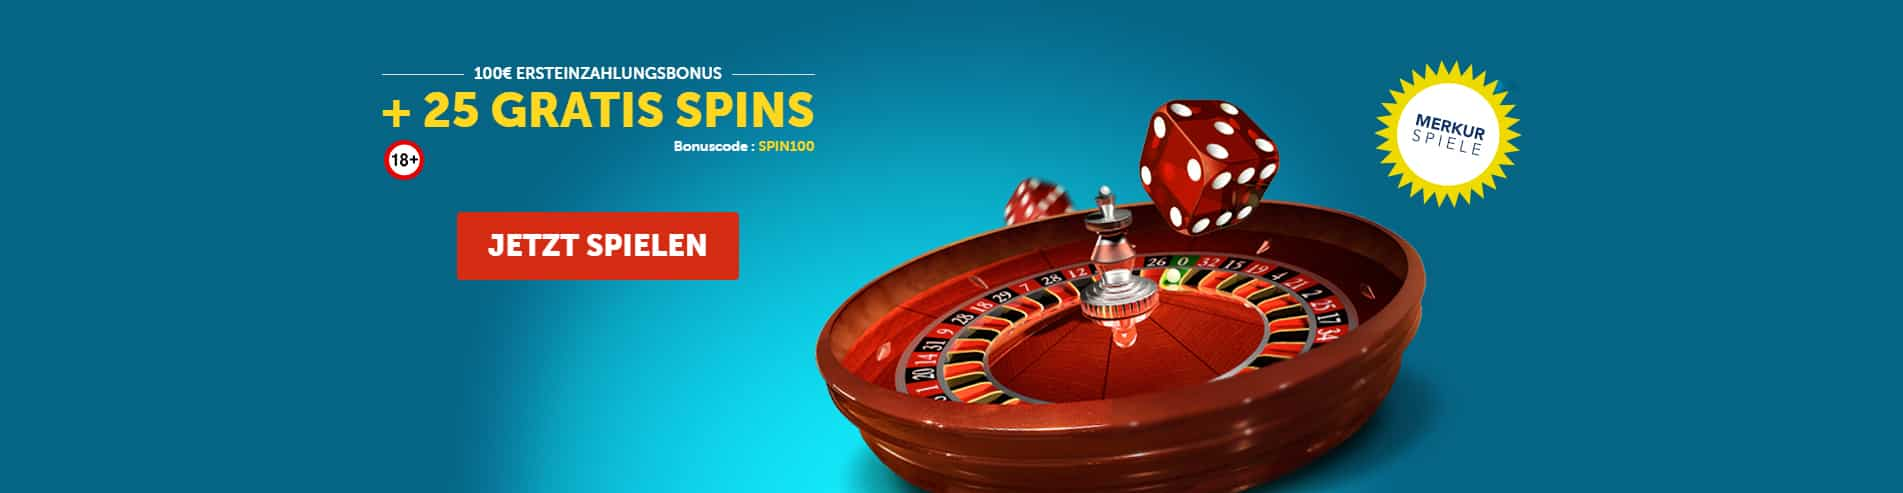 Playmillion Casino Content Images - Germany CasinoTop